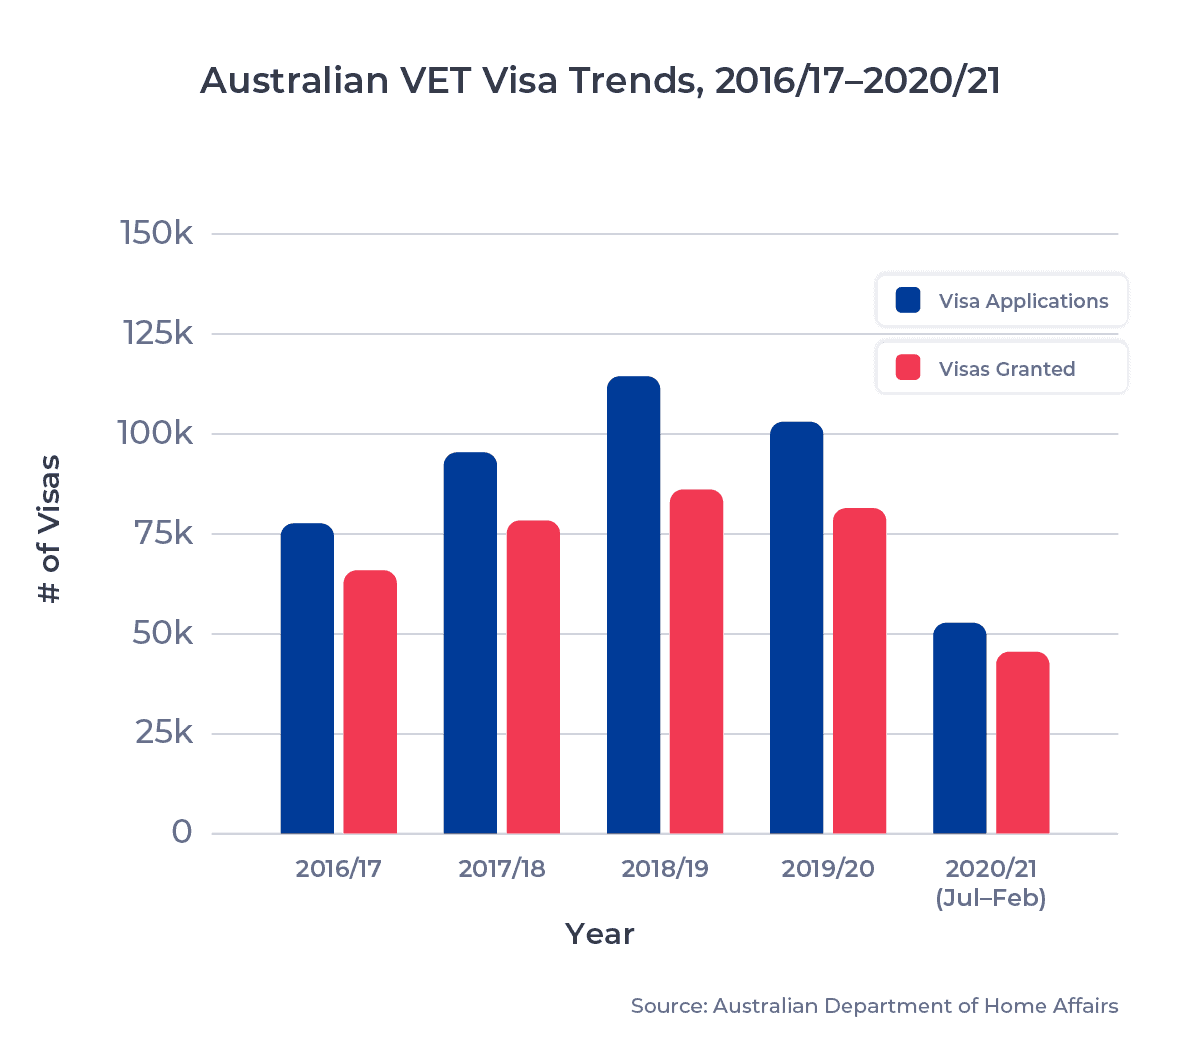 Australia VET Visa Trends vertical bar graph, showing # of visas issued from 2016/17 to 2020/21